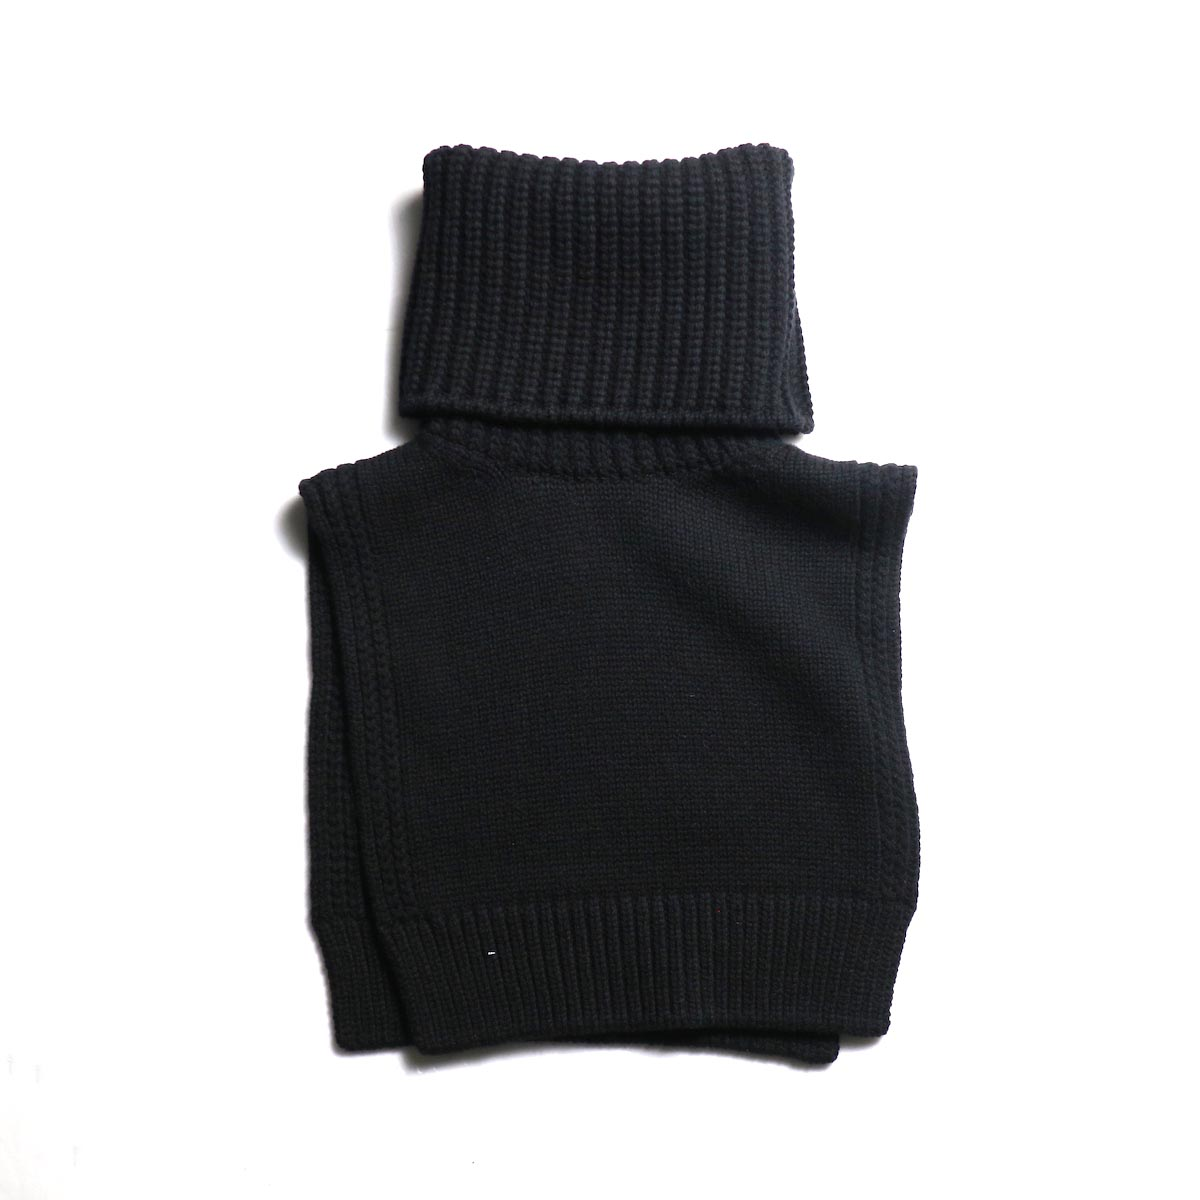 The Soloist / sk.0018AW19 turtleneck dickie. -Black